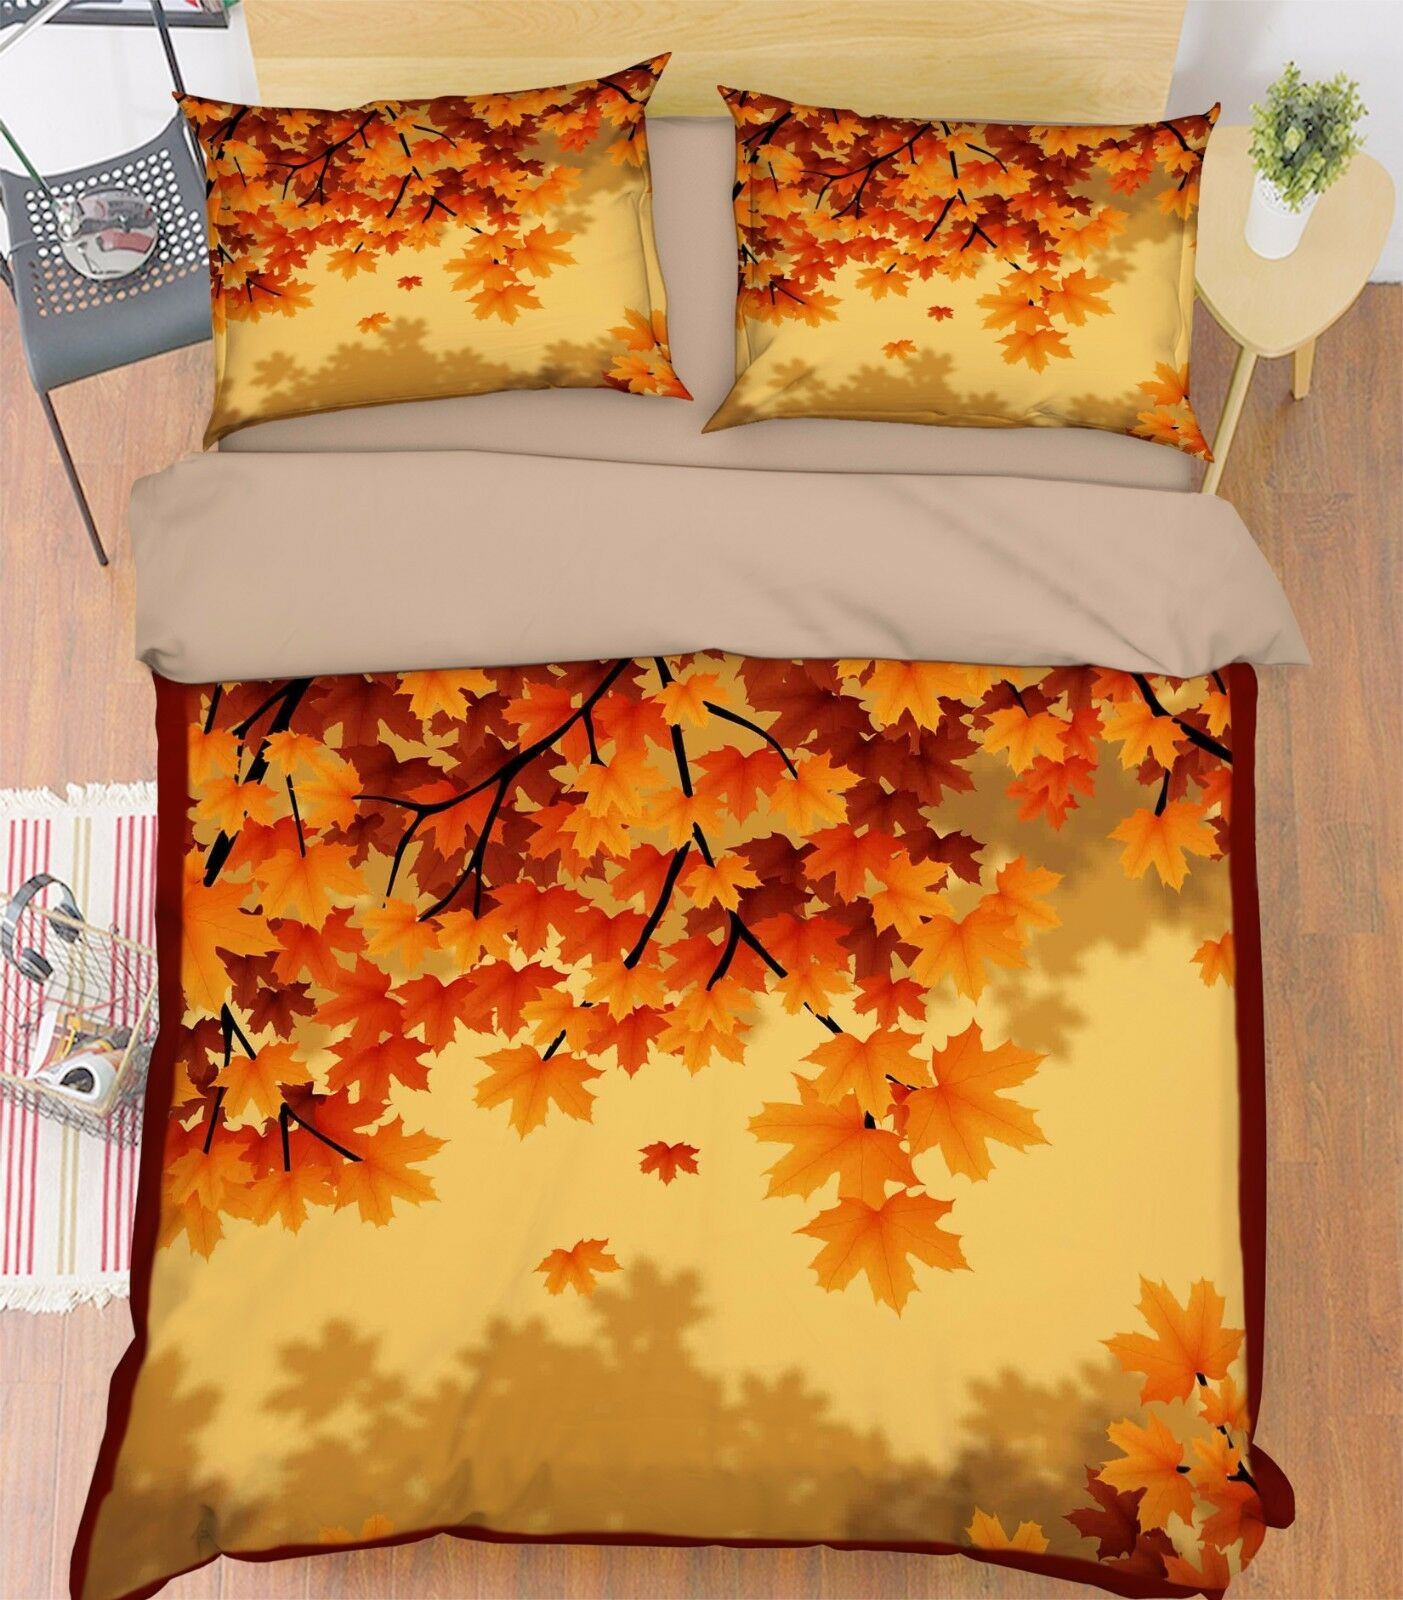 3D Leaf Painted 906 Bed Pillowcases Quilt Duvet Cover Set Single Queen UK Summer